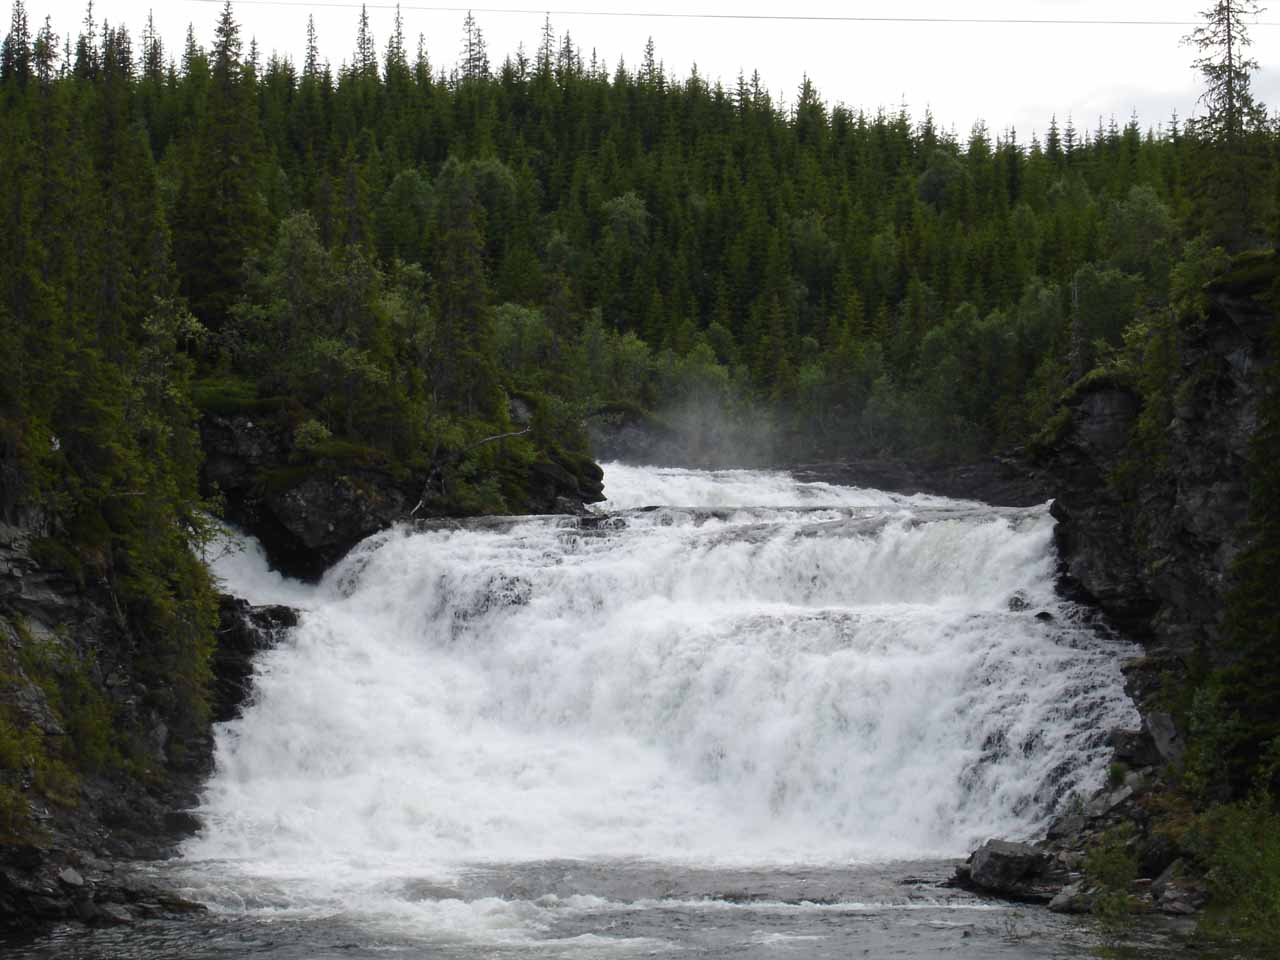 This was the waterfall we saw on the road bridge over the Tya River.  The falls was called Kvernfossen according to the Norwegian maps